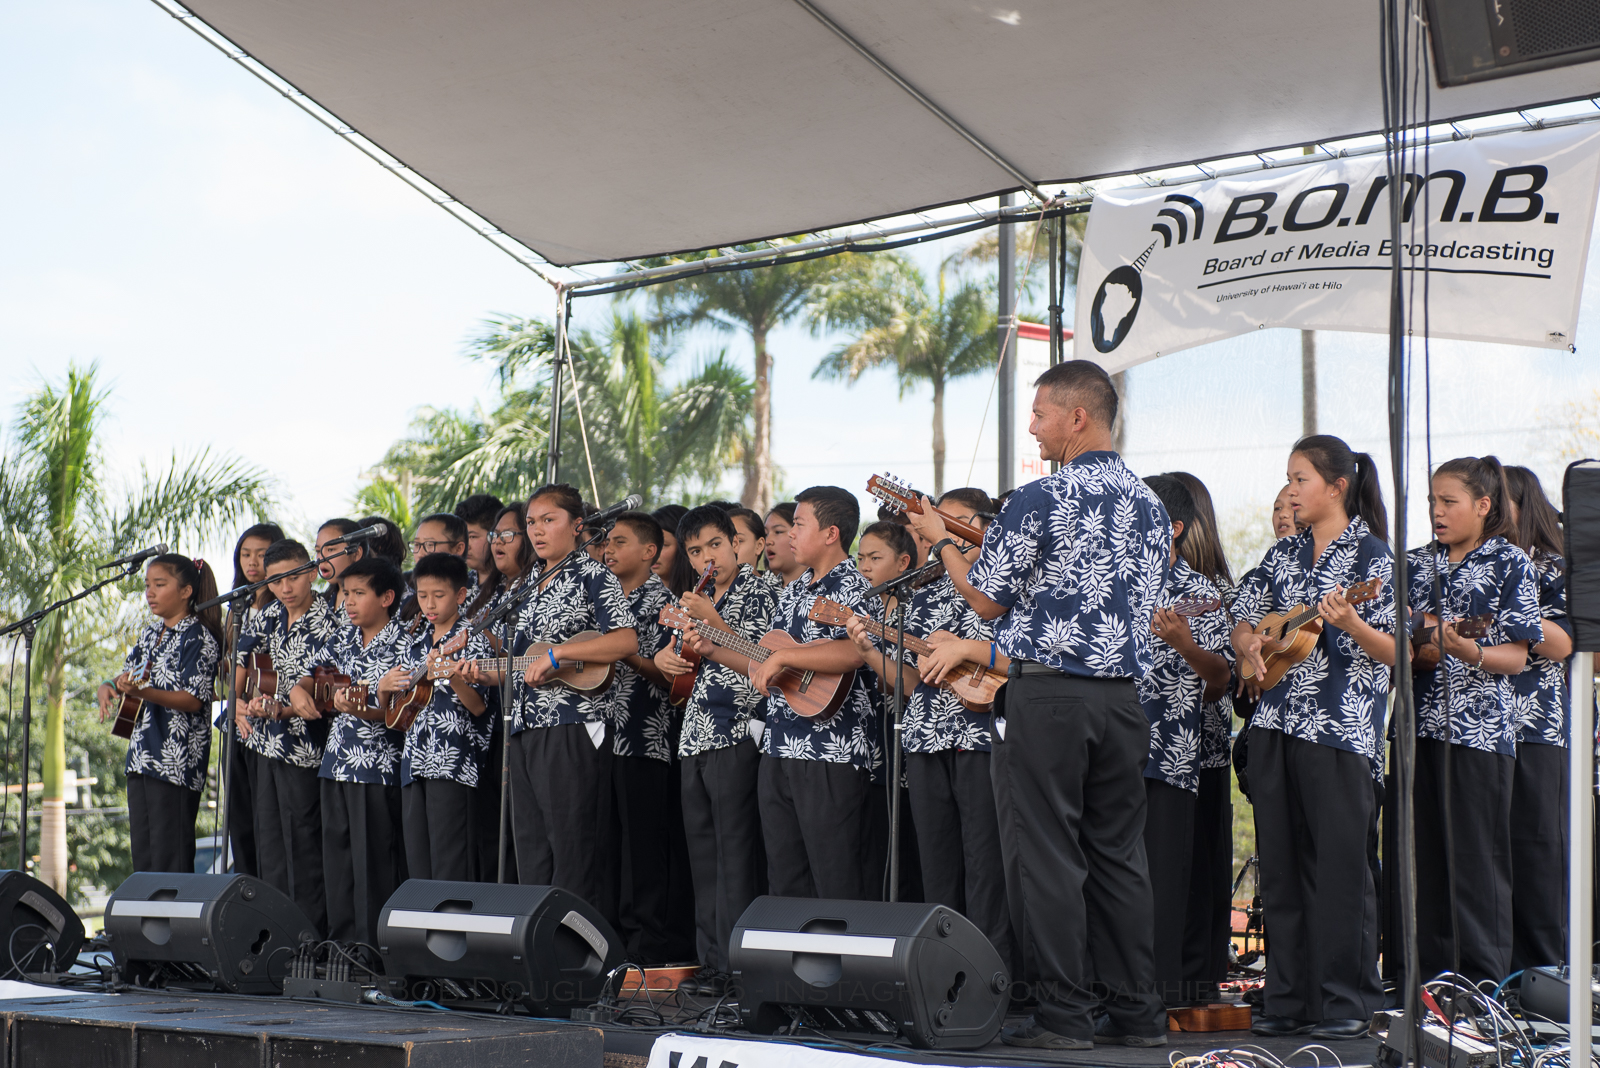 Group of young ukulele players on stage.